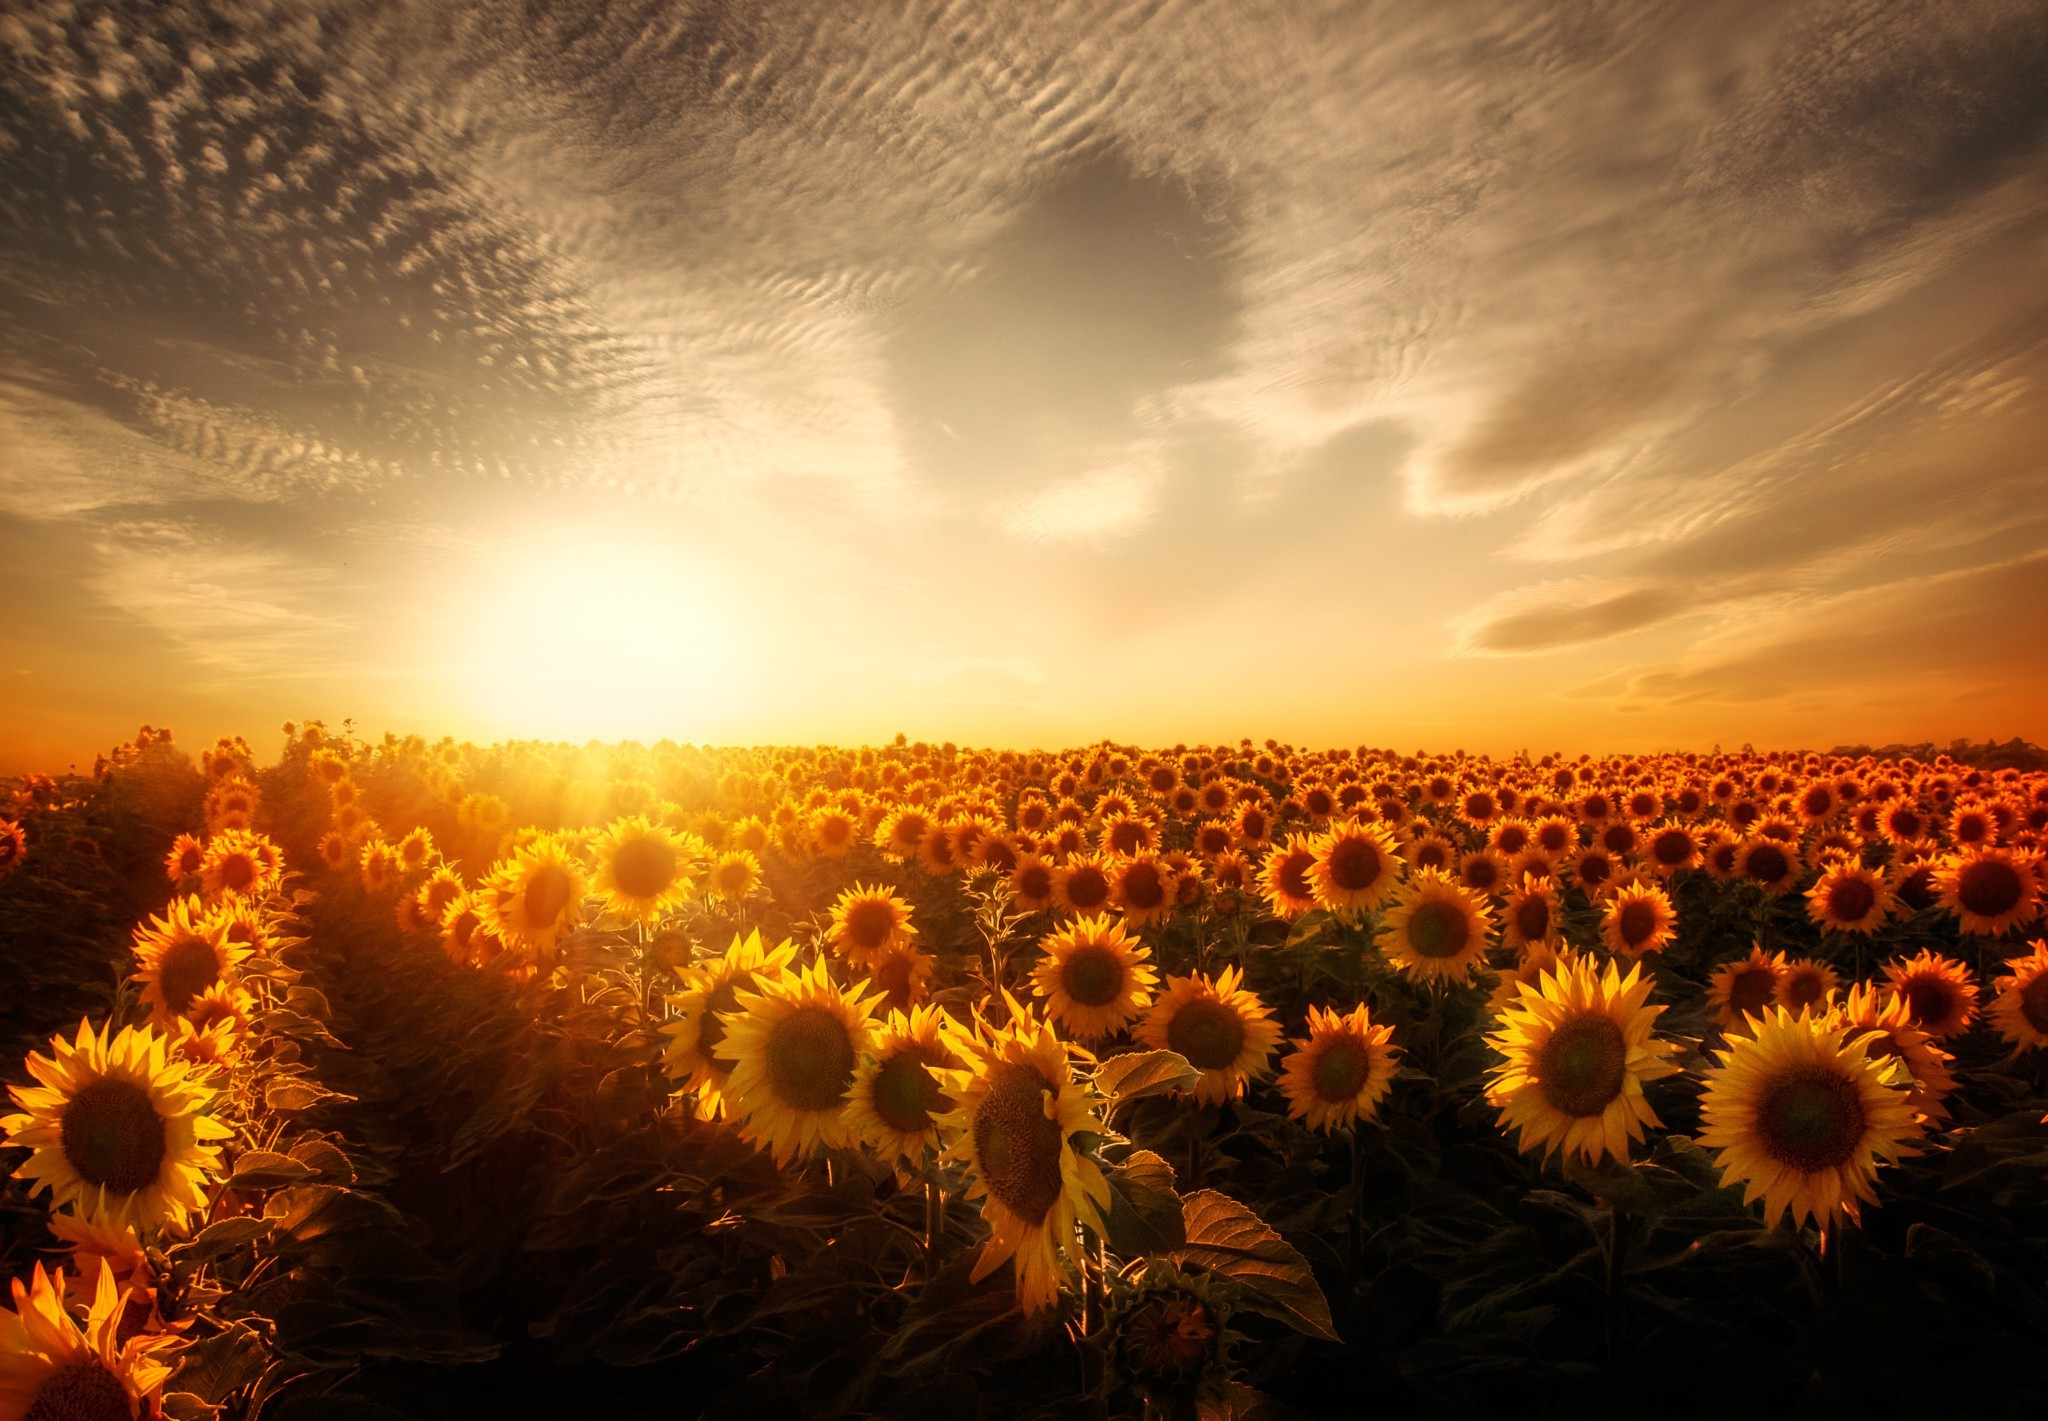 sunflowers sunset, hd nature, 4k wallpapers, images, backgrounds